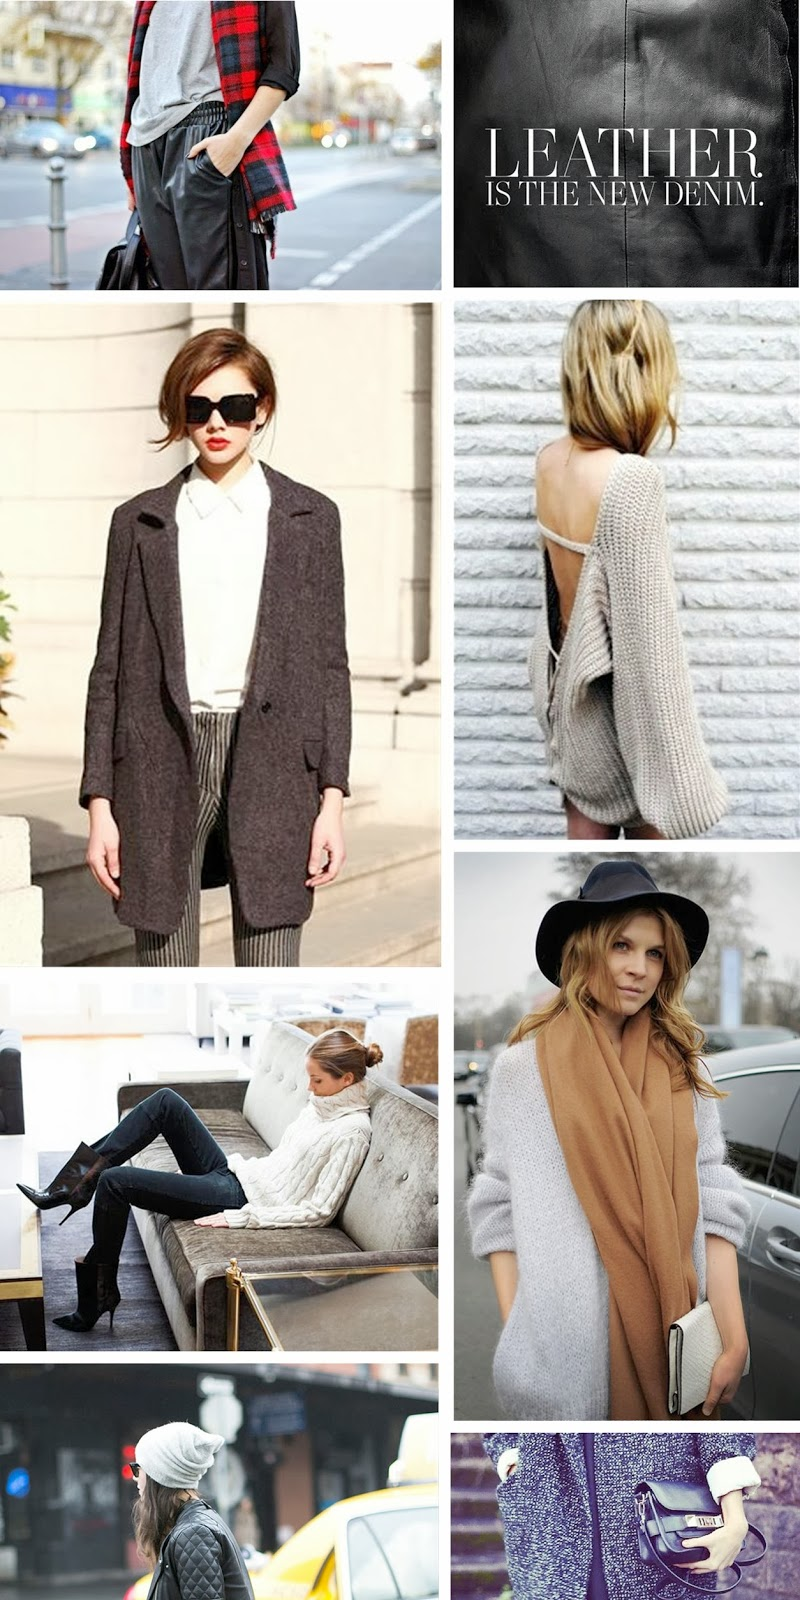 winter trends 2013 2014, fashion inspiration board, fashion blogger, leather trend, tartan trend, oversize boyfriend coat, layering,beanie